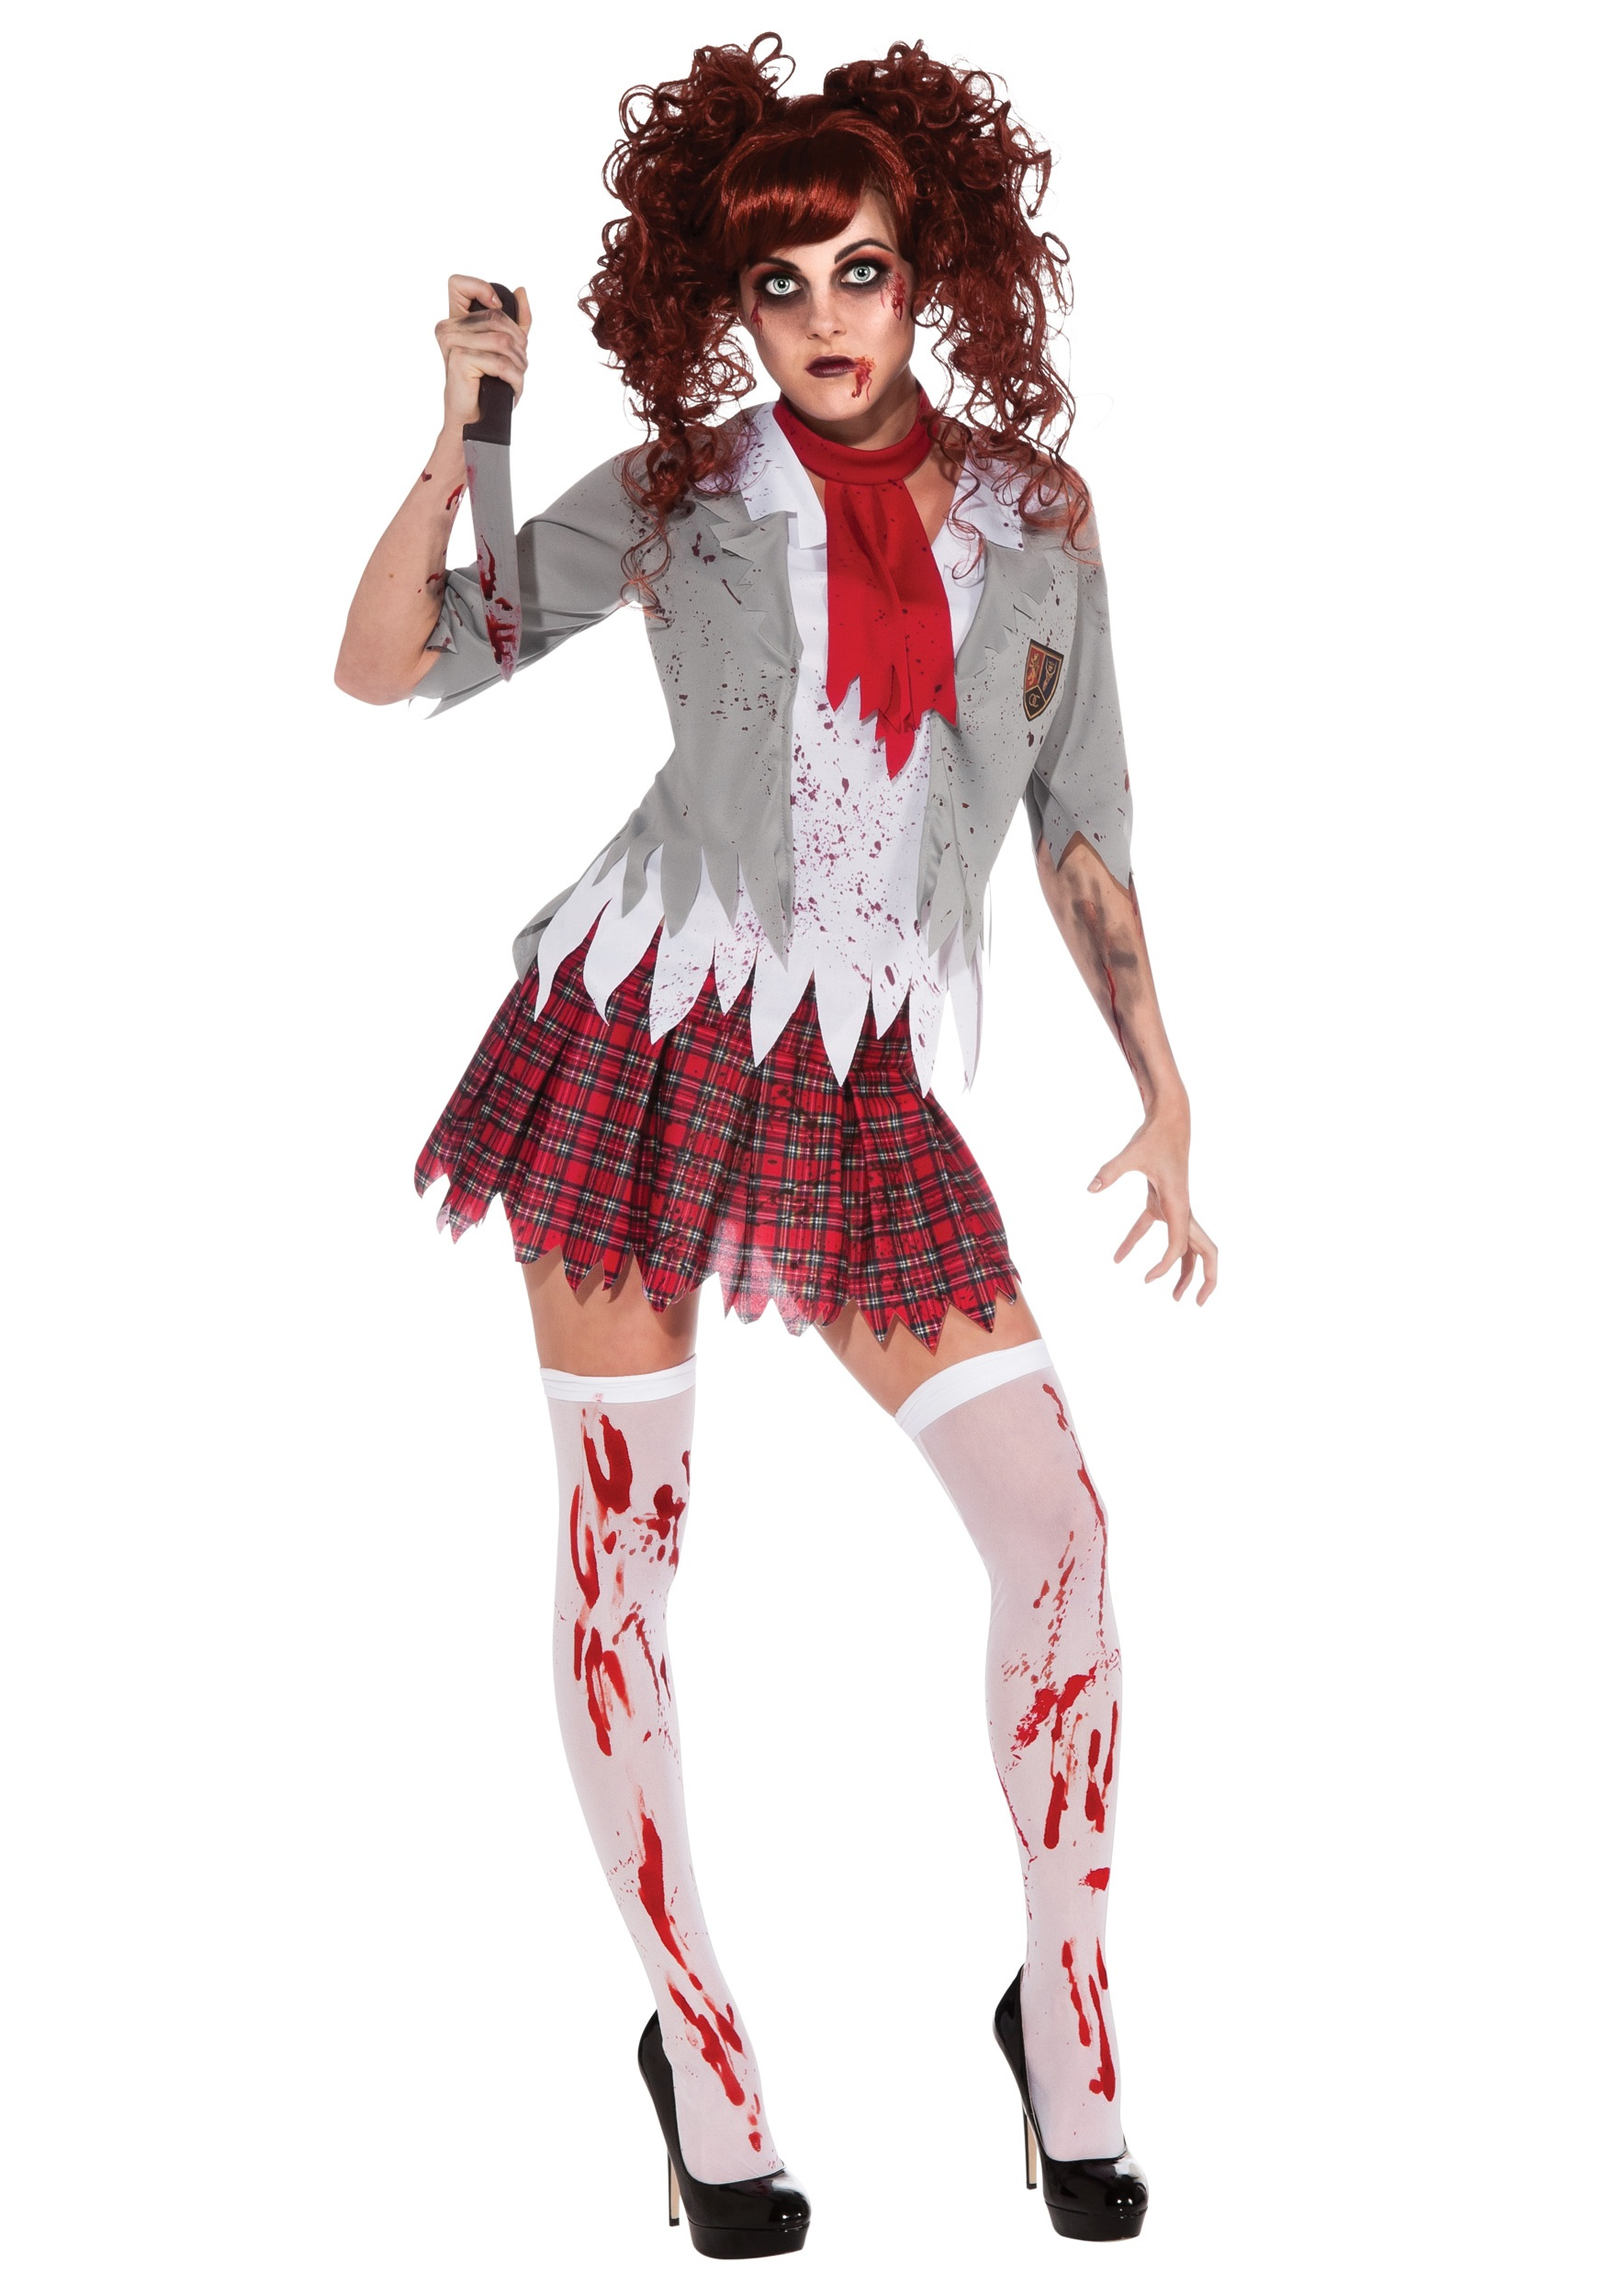 Zombie Halloween Costumes For Toddlers.Zombie School Girl Costume